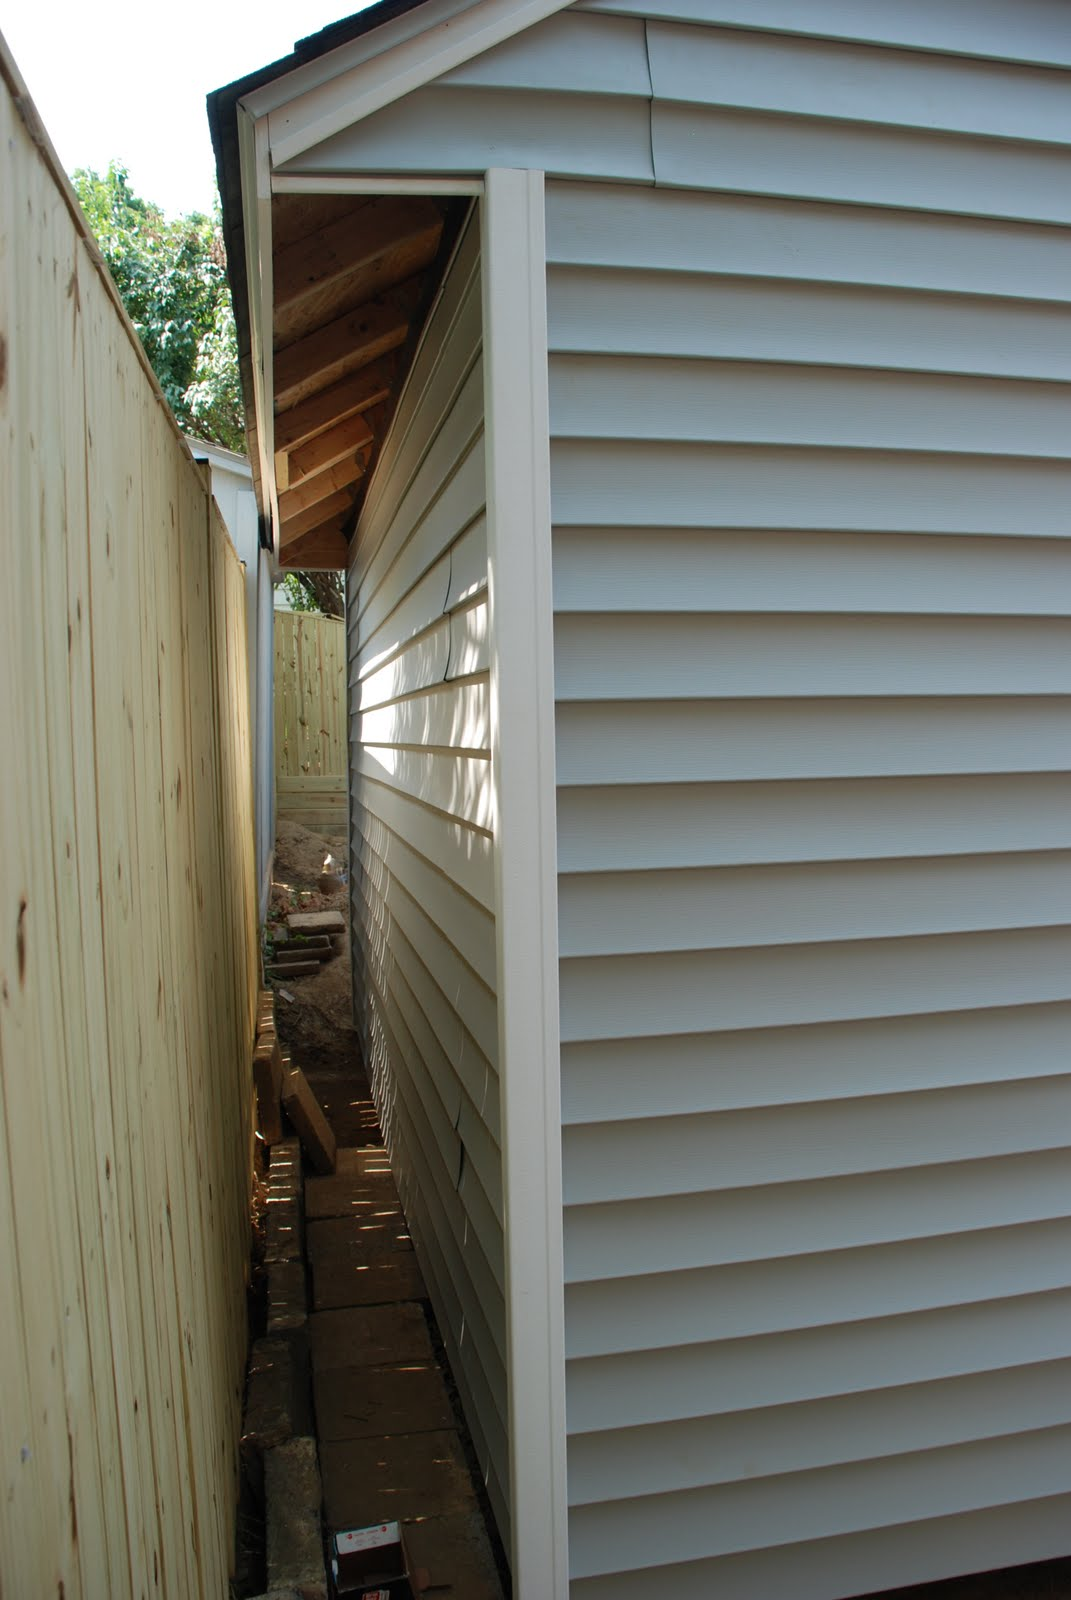 Diy how to install vinyl siding - S Used The Tin Snips We Bought For The Sun Room Renovation To Cut The Vinyl Siding